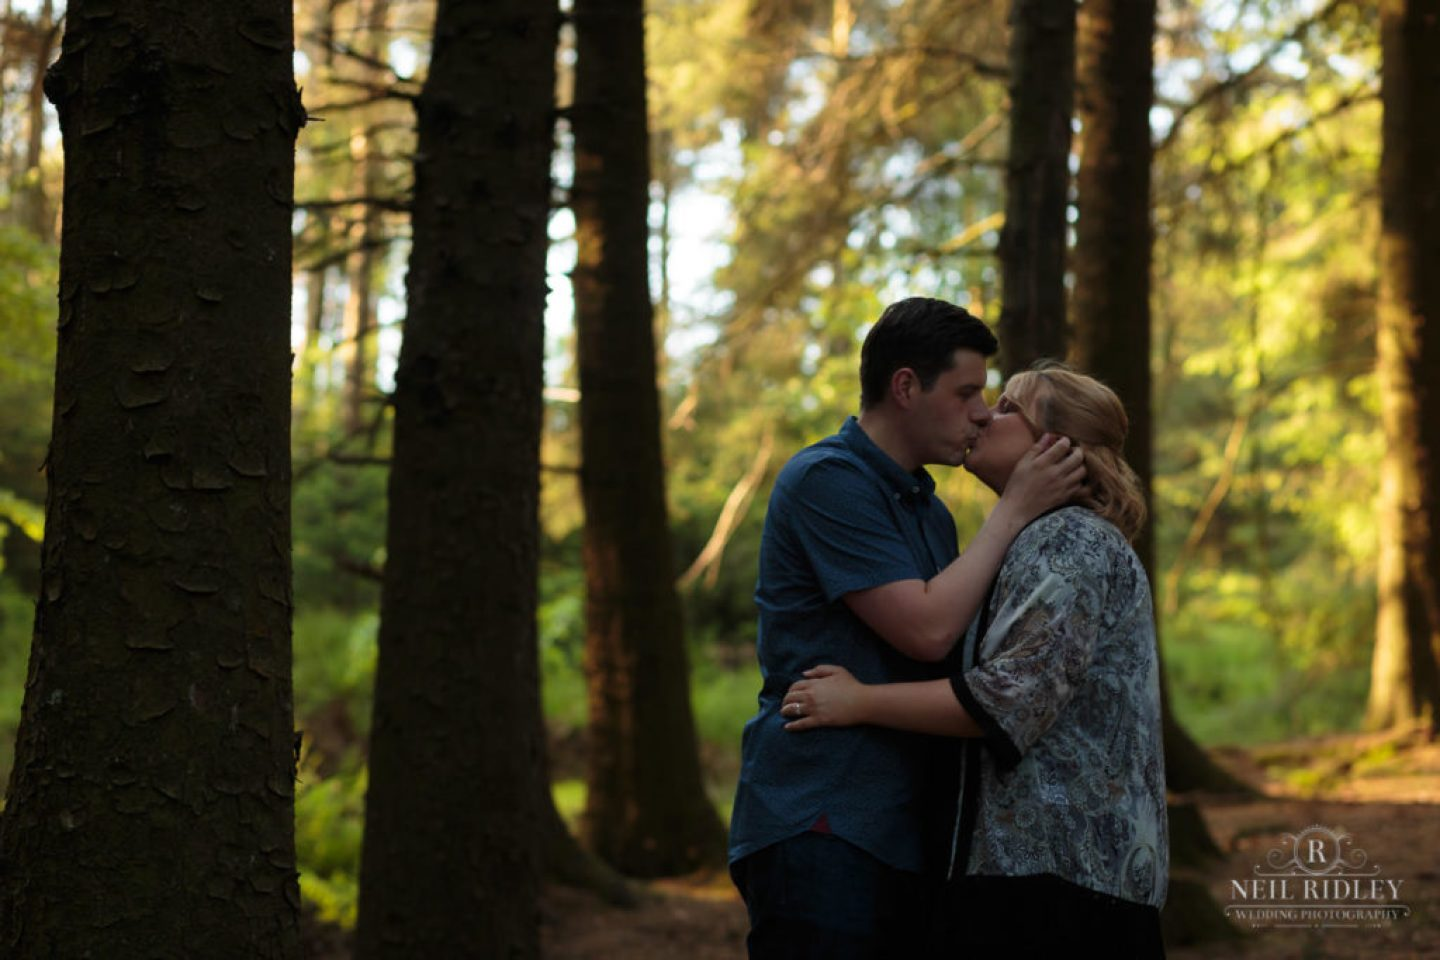 Lancashire Pre Wedding Shoot at Beacon Fell, Young couple kiss in a forest